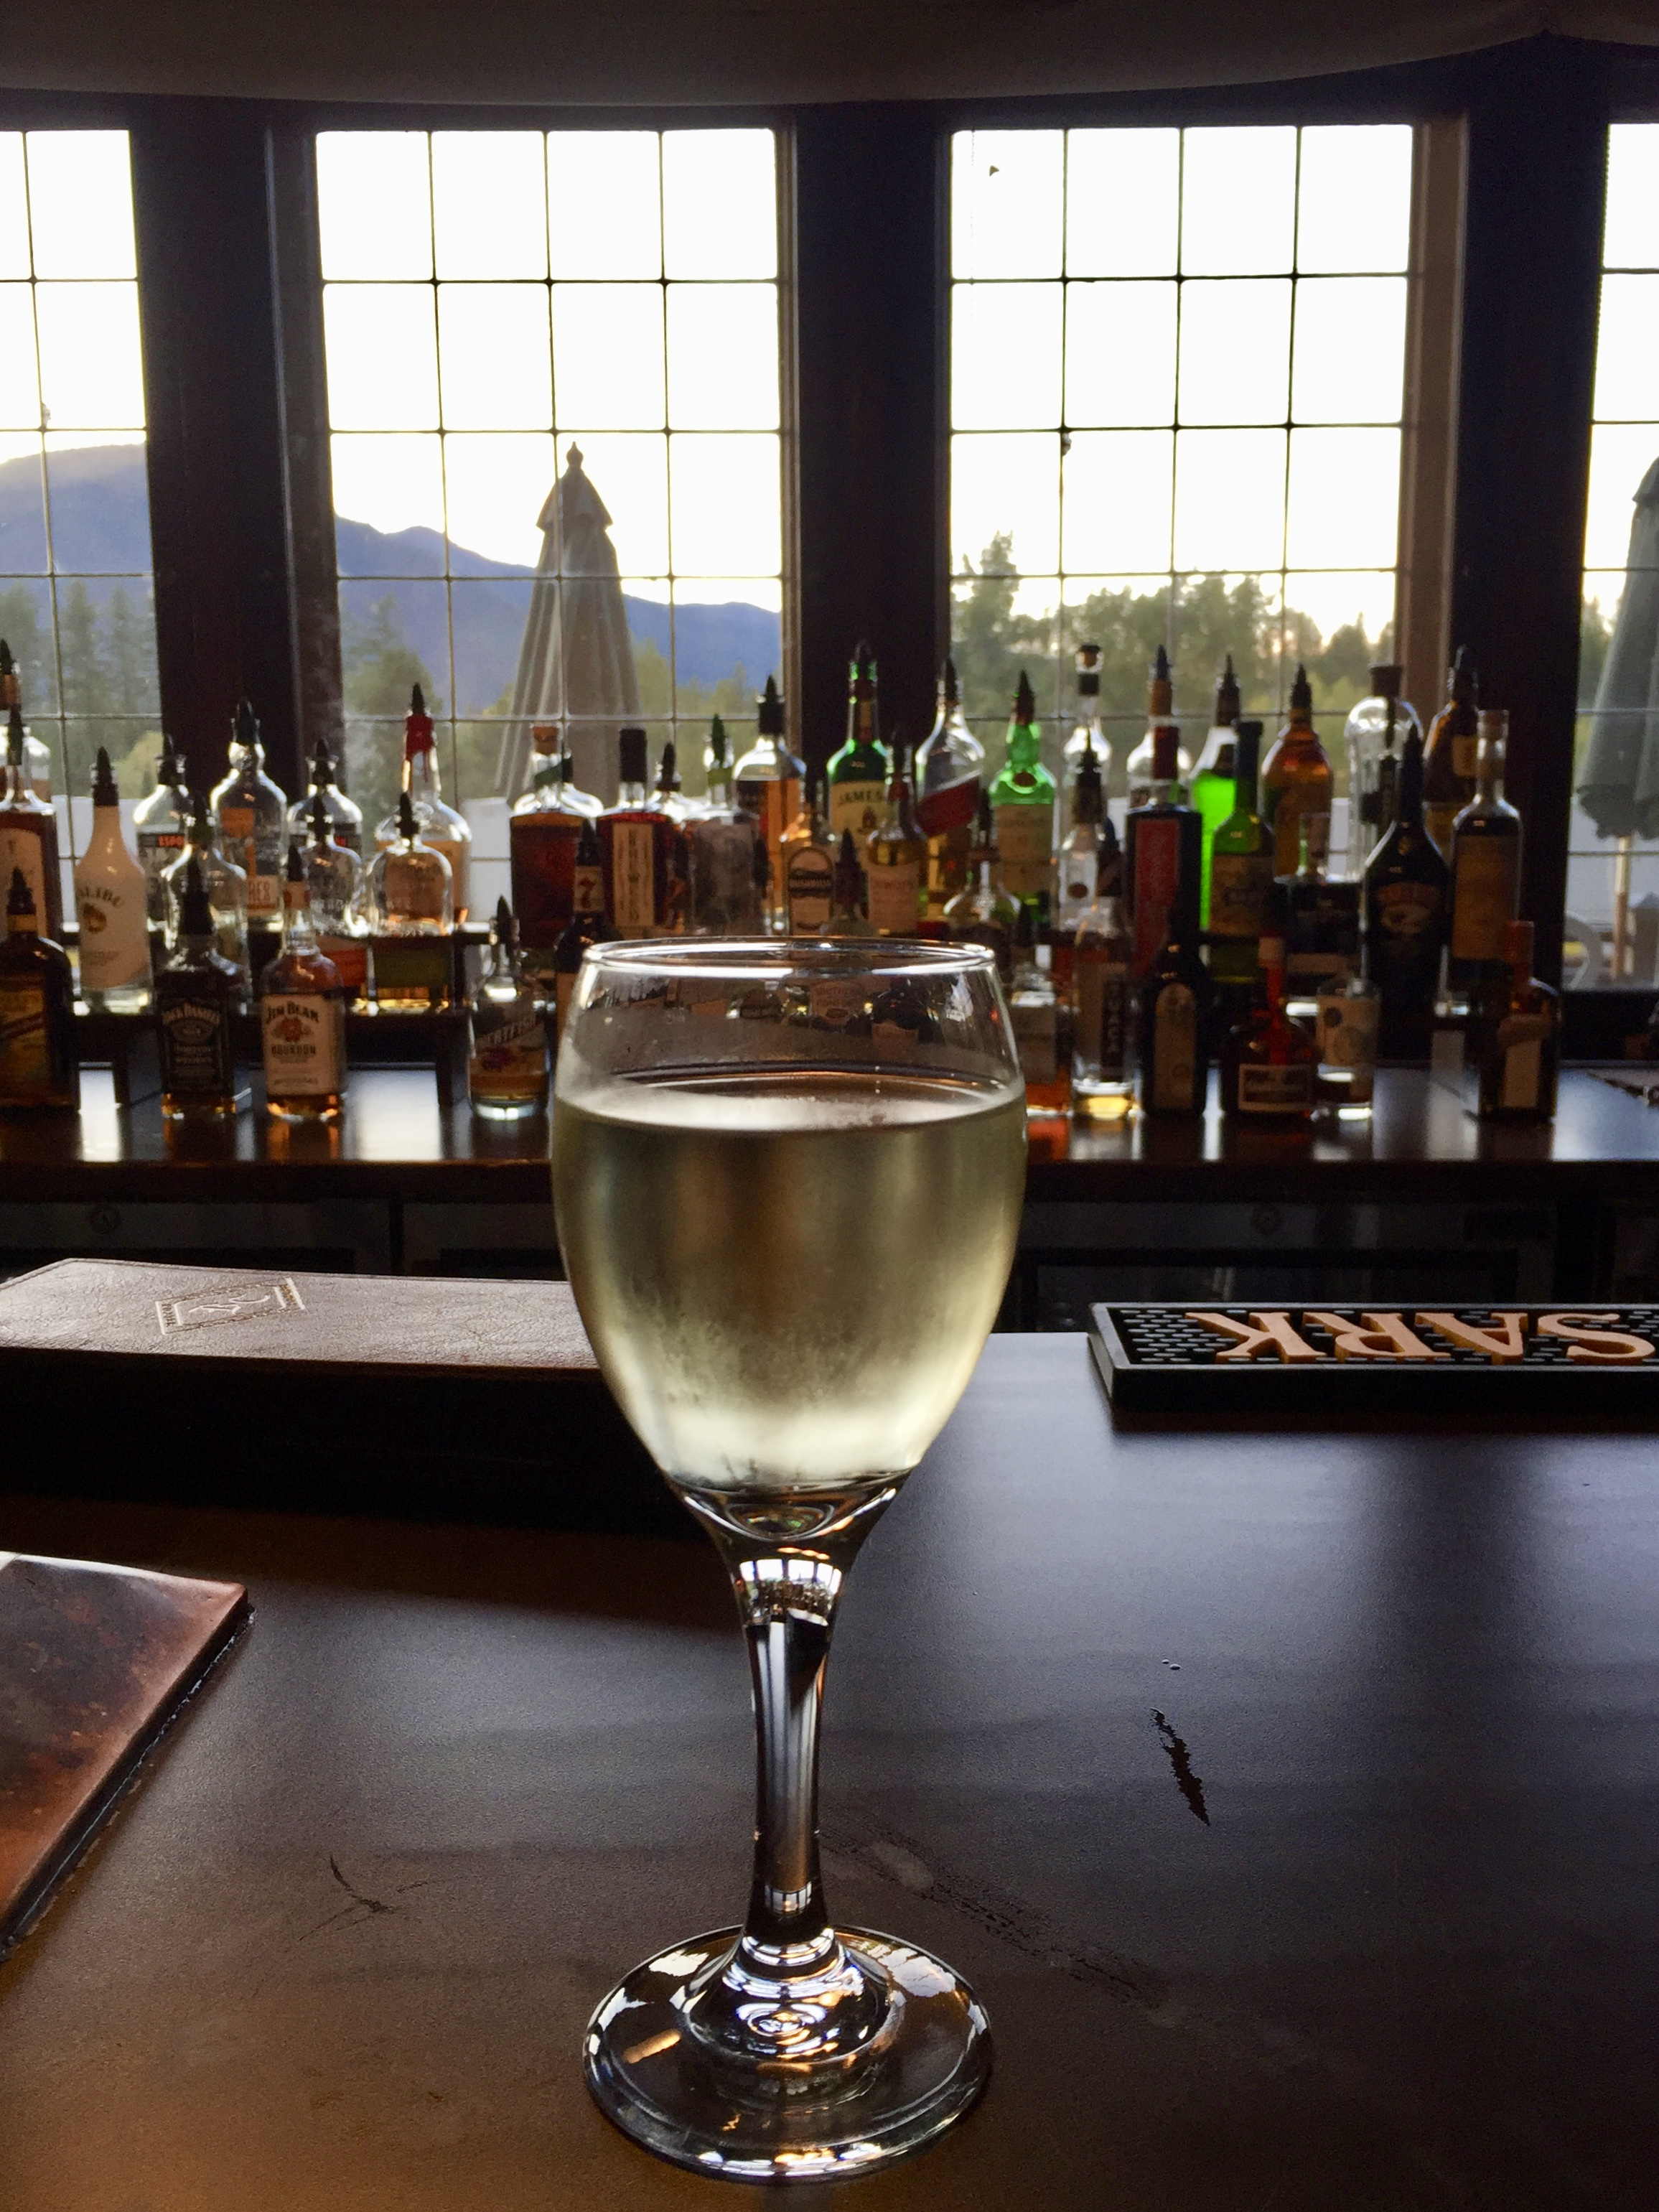 A bar - but not THE bar - in Glacier National Park.